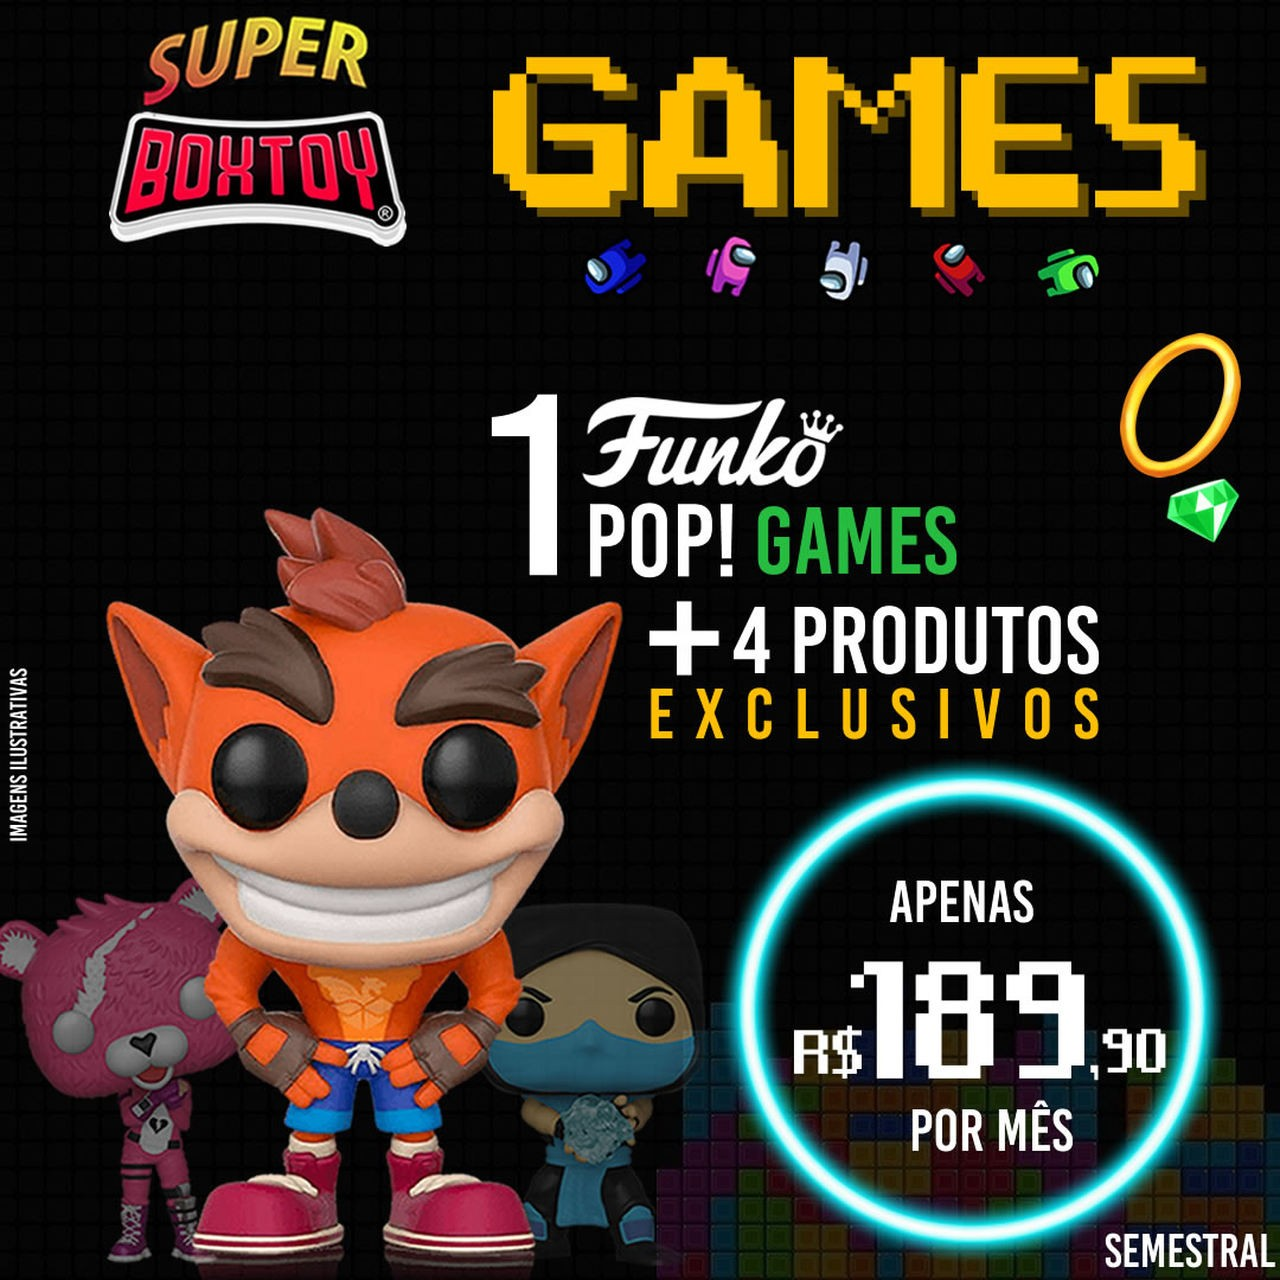 SUPER BOX - Semestral  - Boxtoy